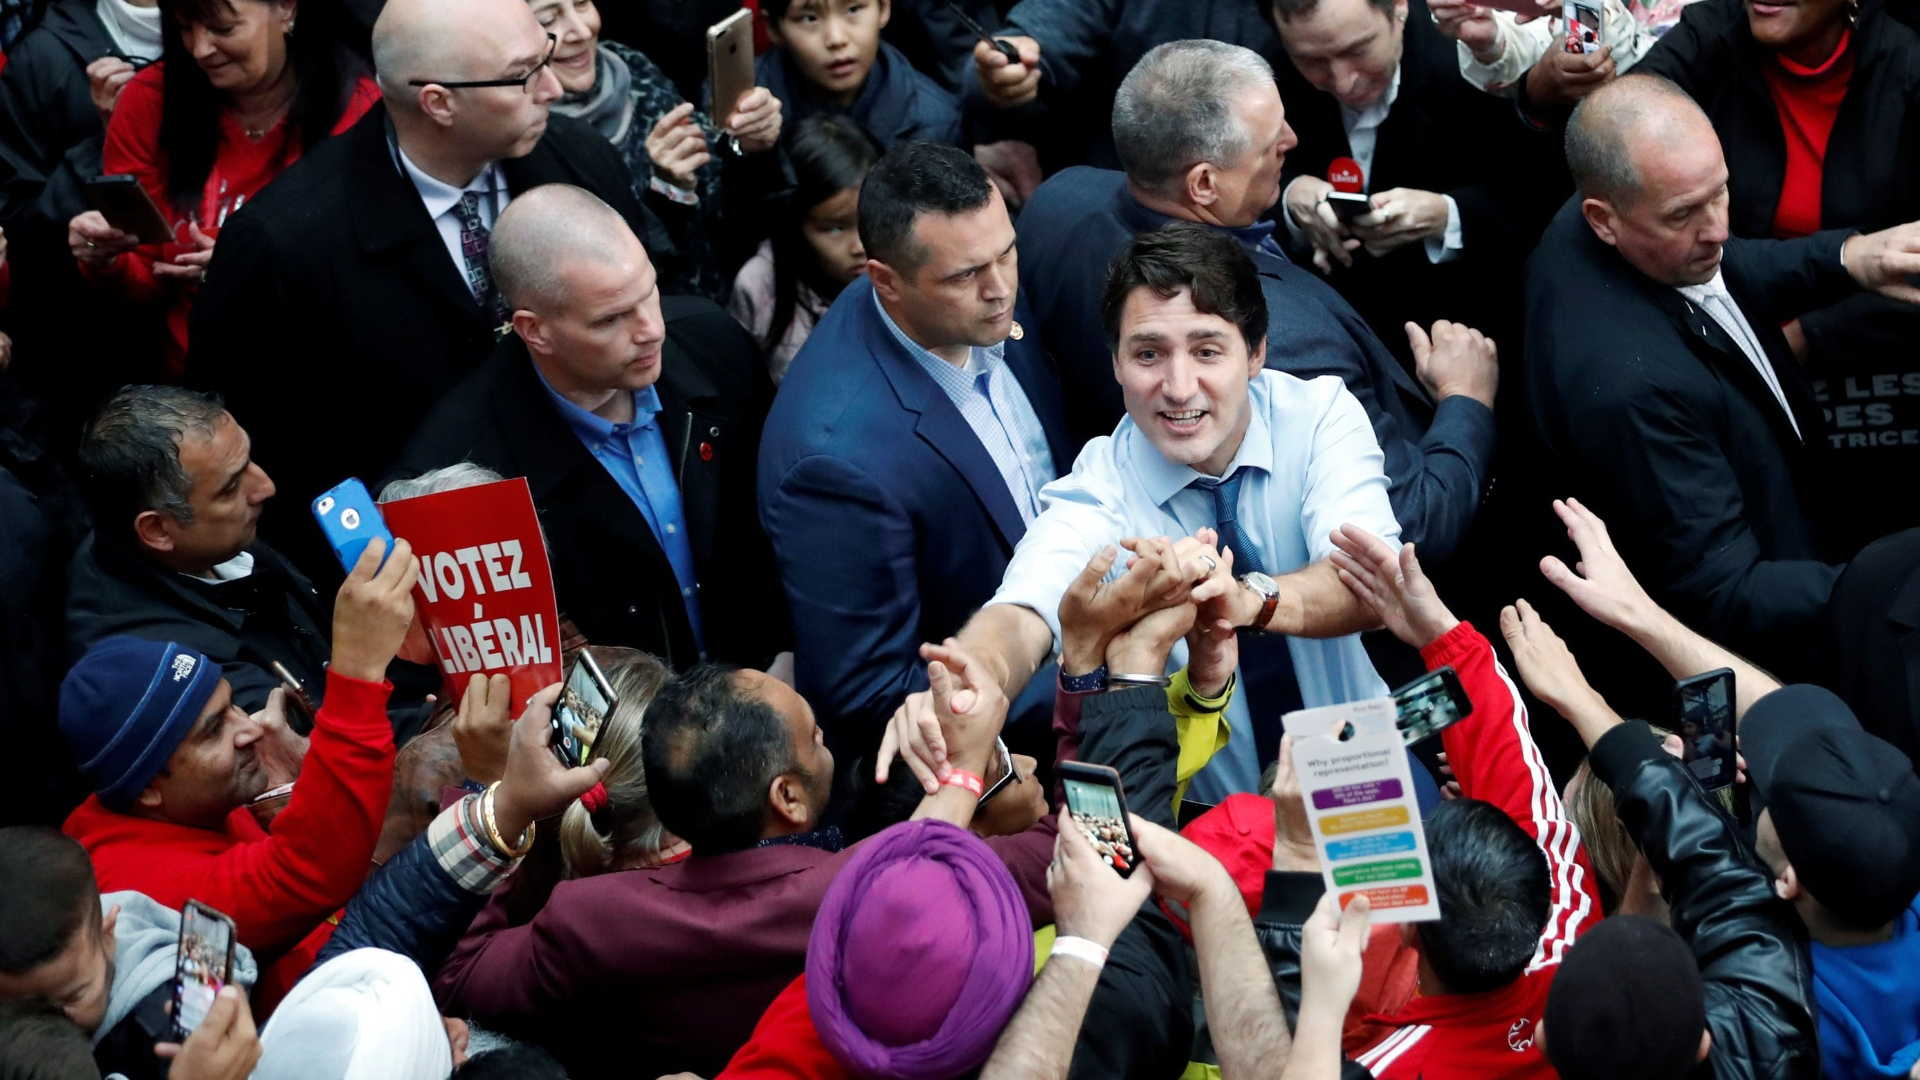 Trudeau and Scheer in tight race as Canadians cast ballots